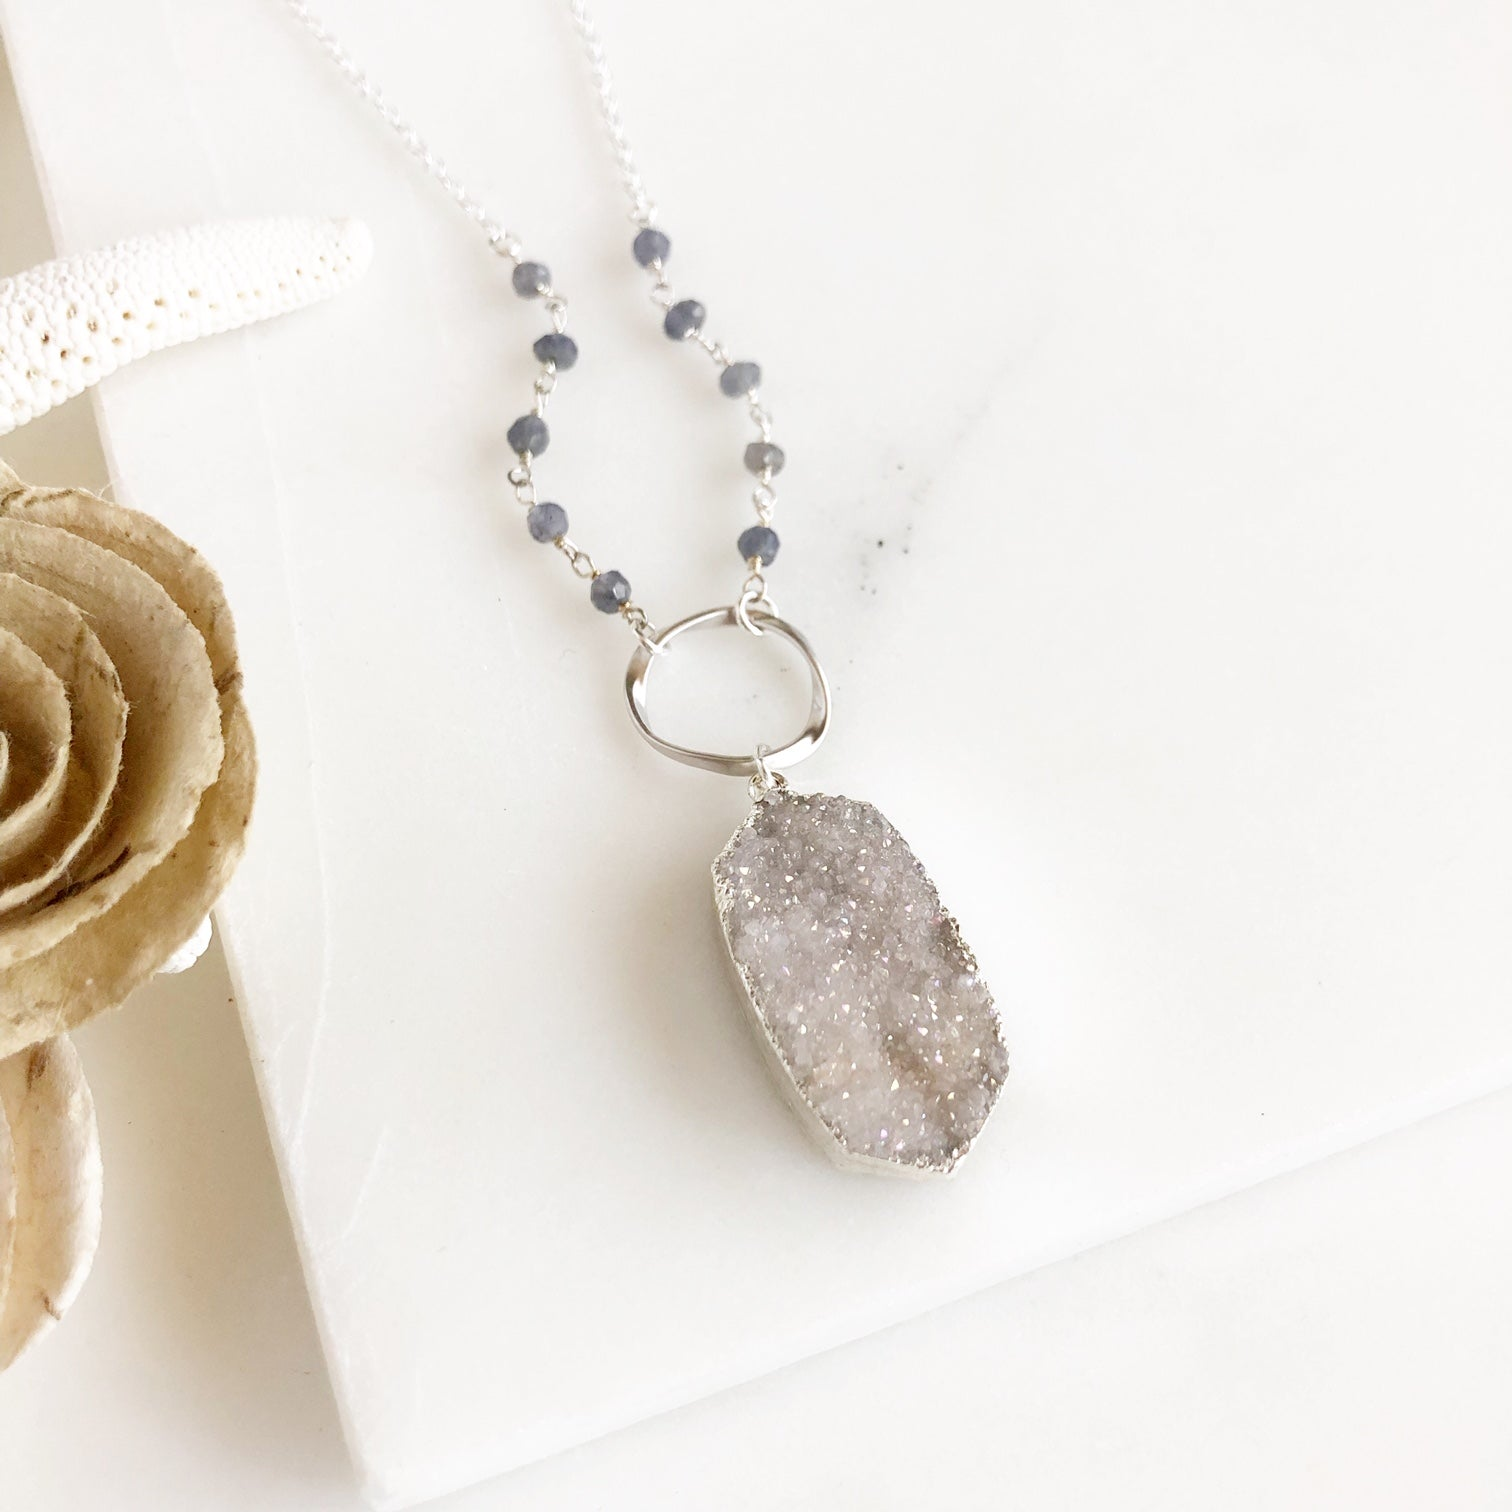 Long White Druzy Necklace in Sterling Silver with Grey Beaded Accent and Ring.